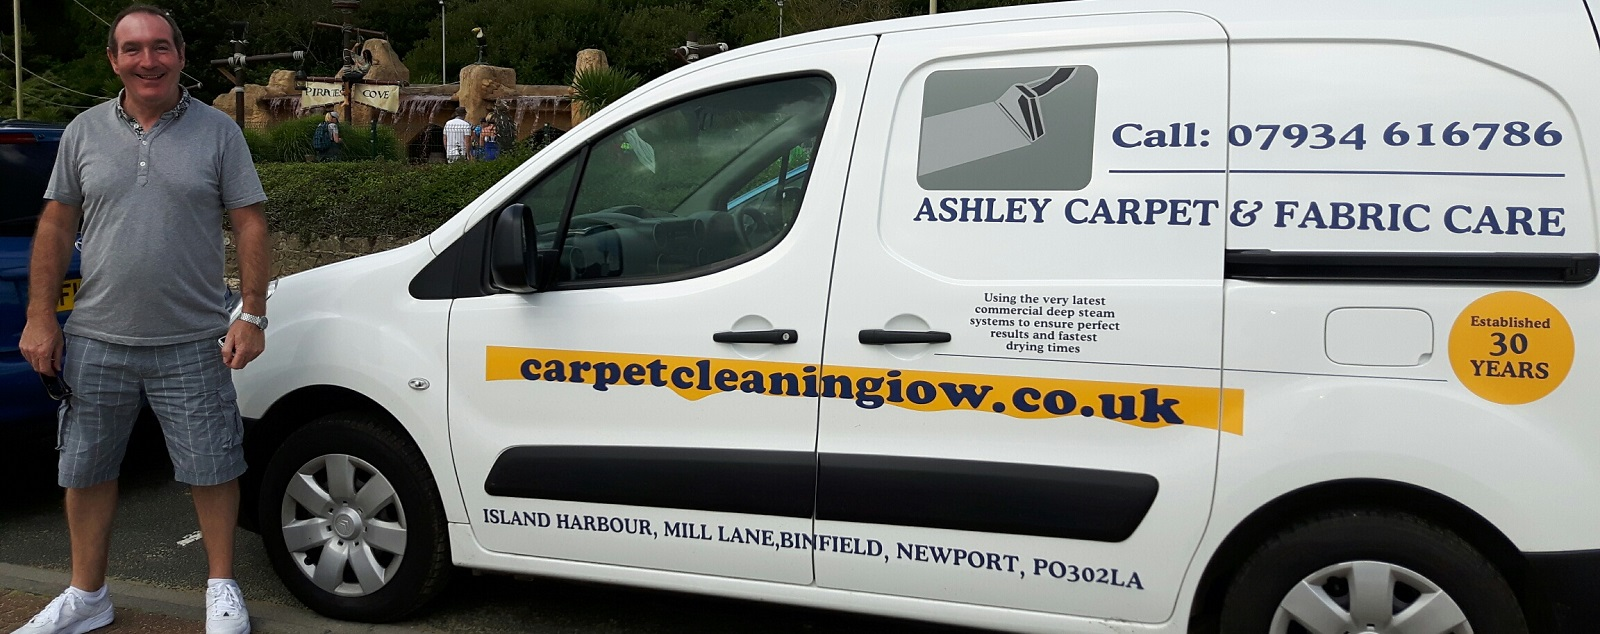 carpet-cleaning-iow